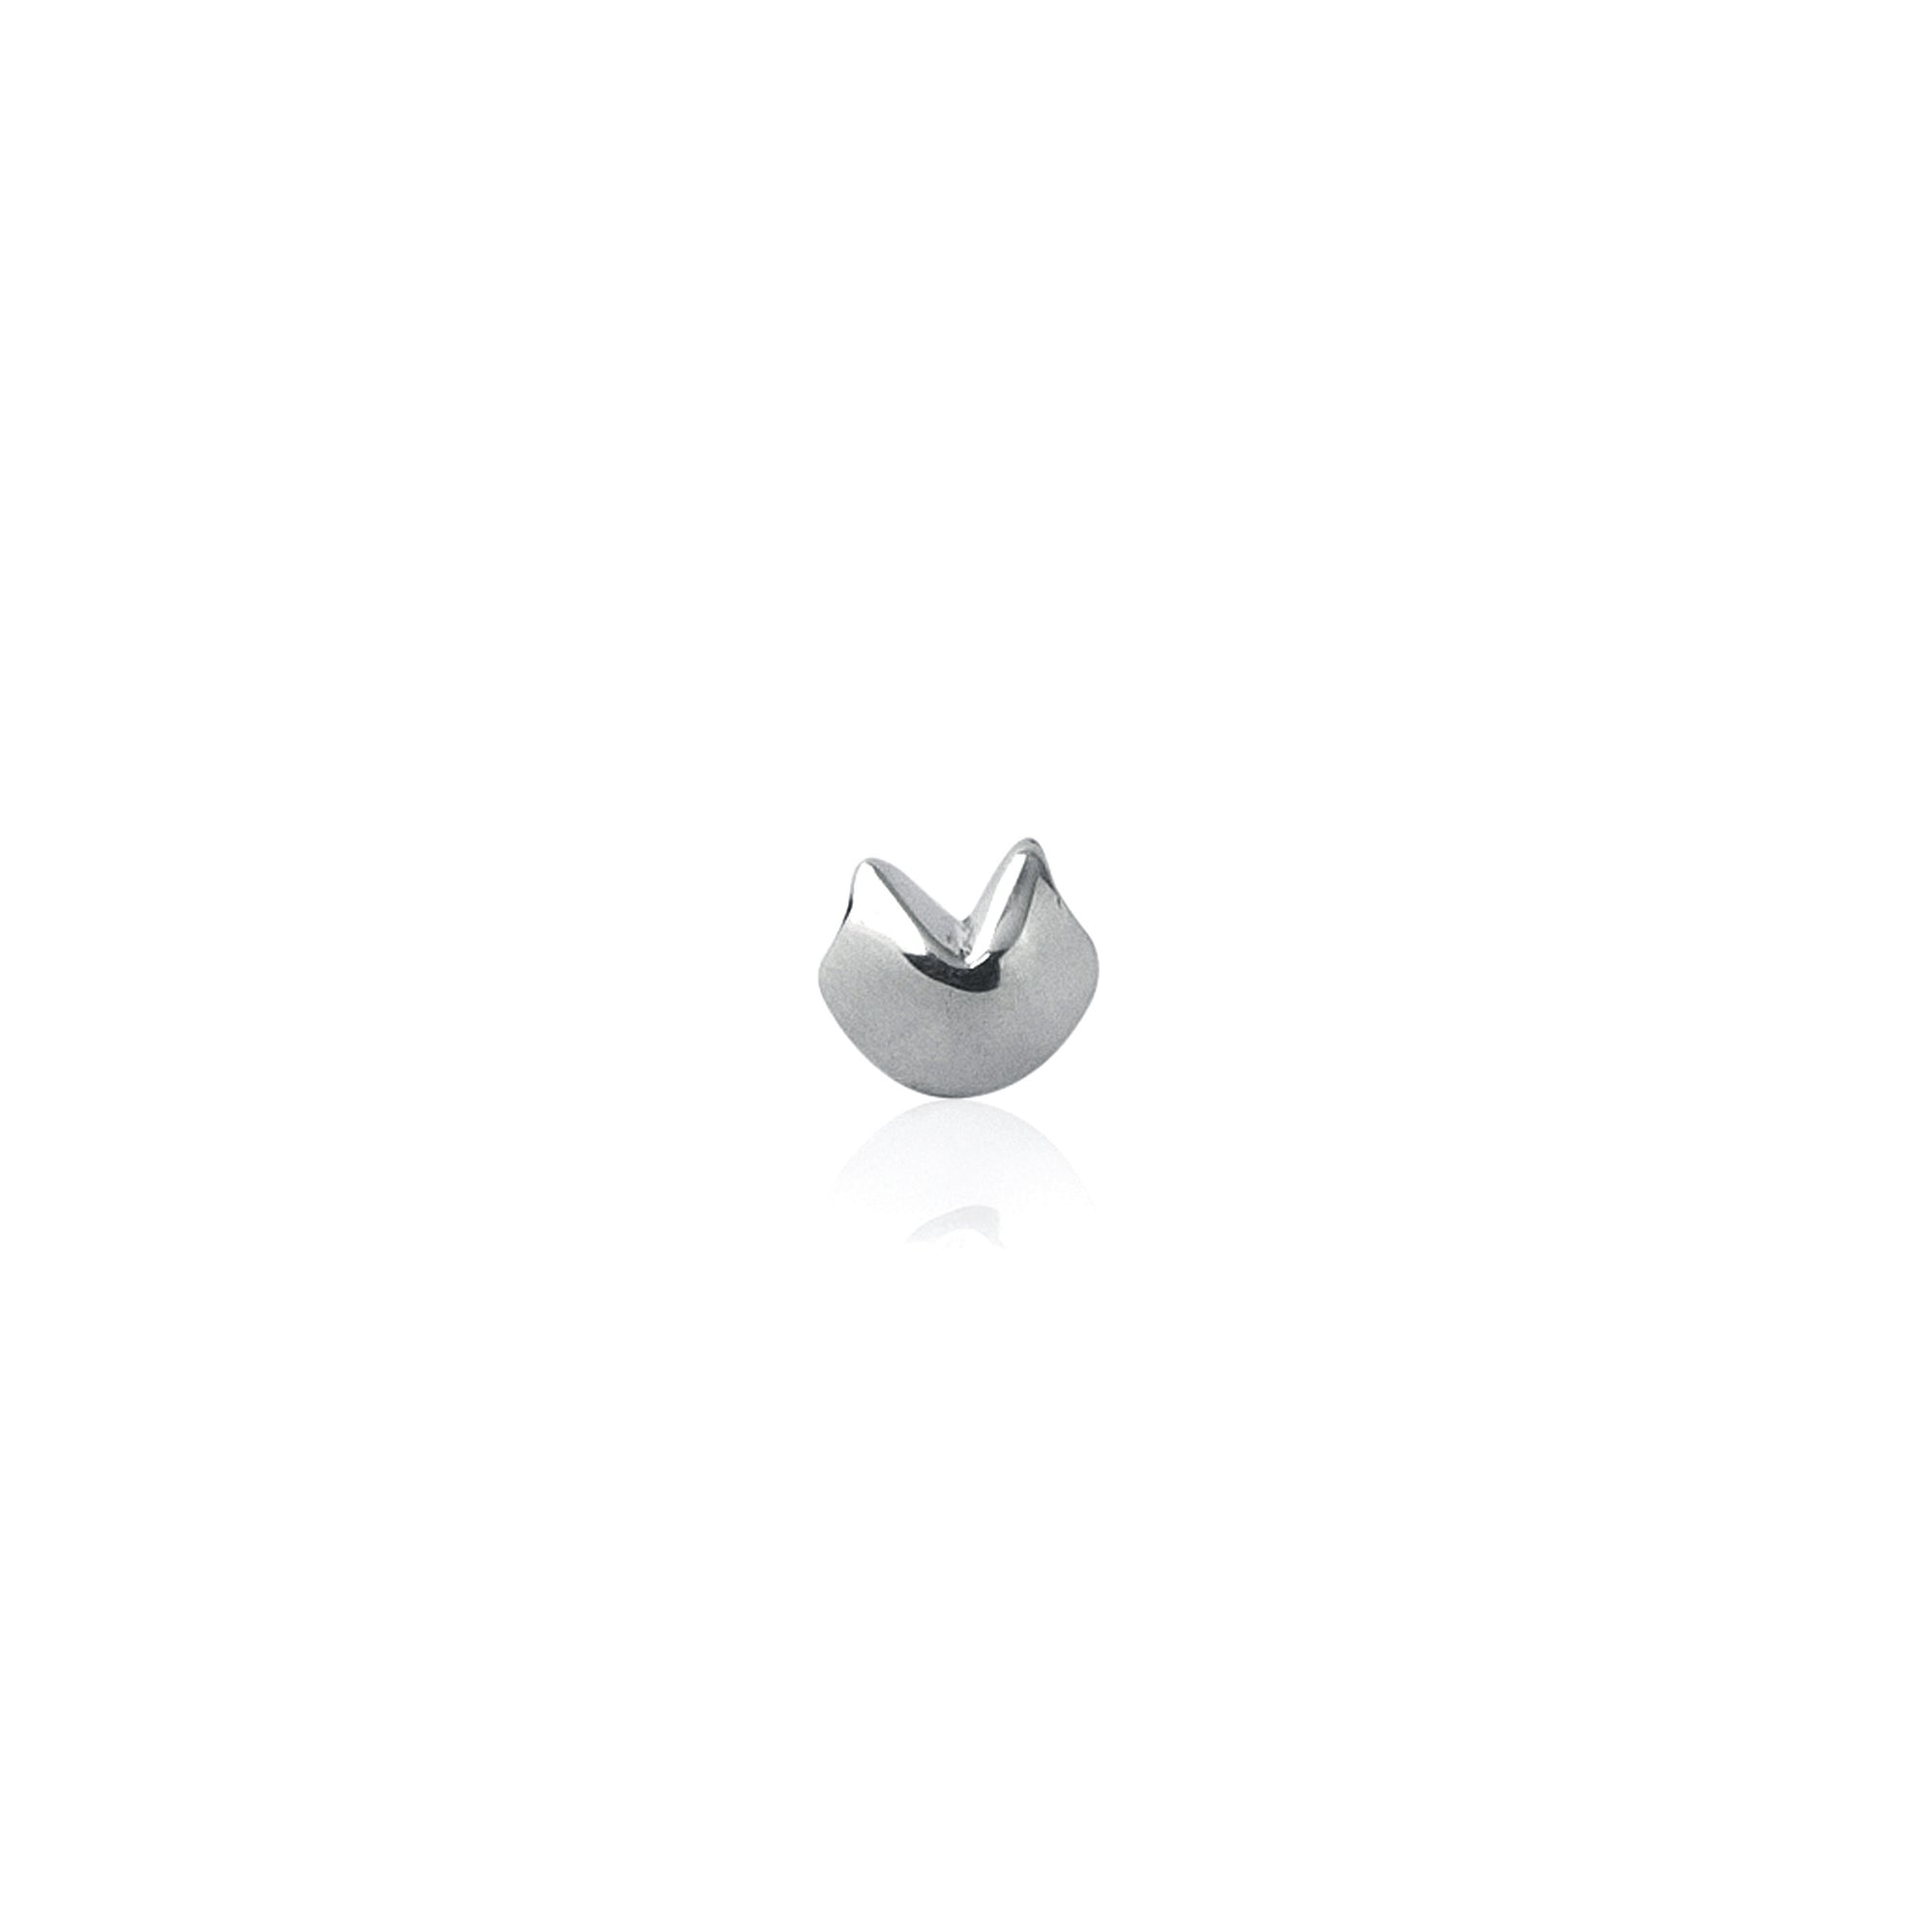 Awestruck in luck Charm (Silver)